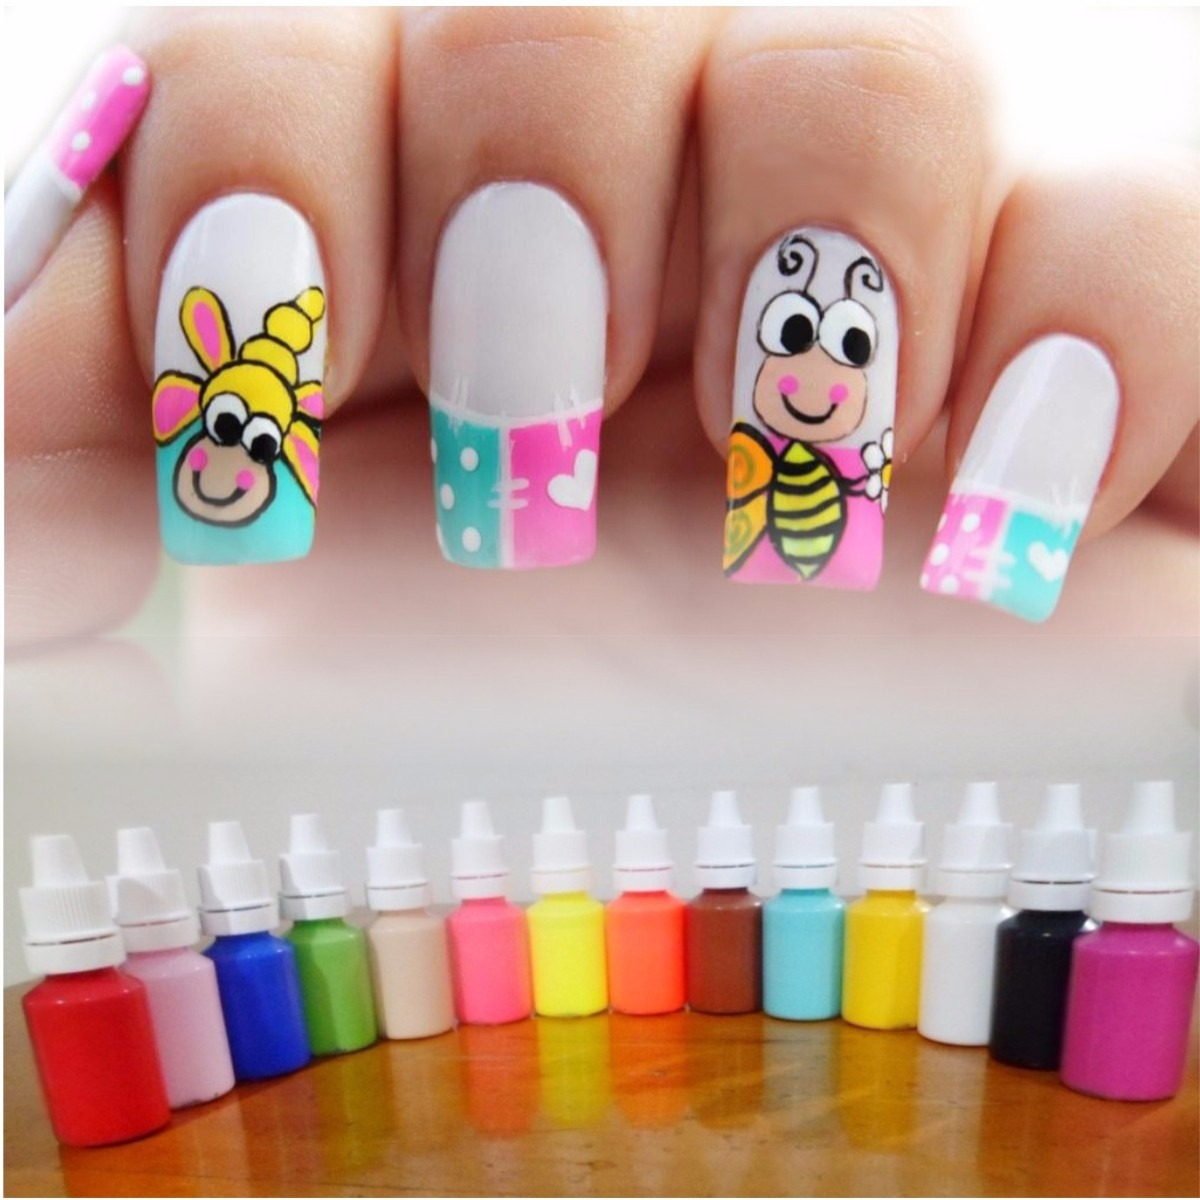 Kit de 12 pinturas acr licas nail art decoraci n u as for Decoracion unas